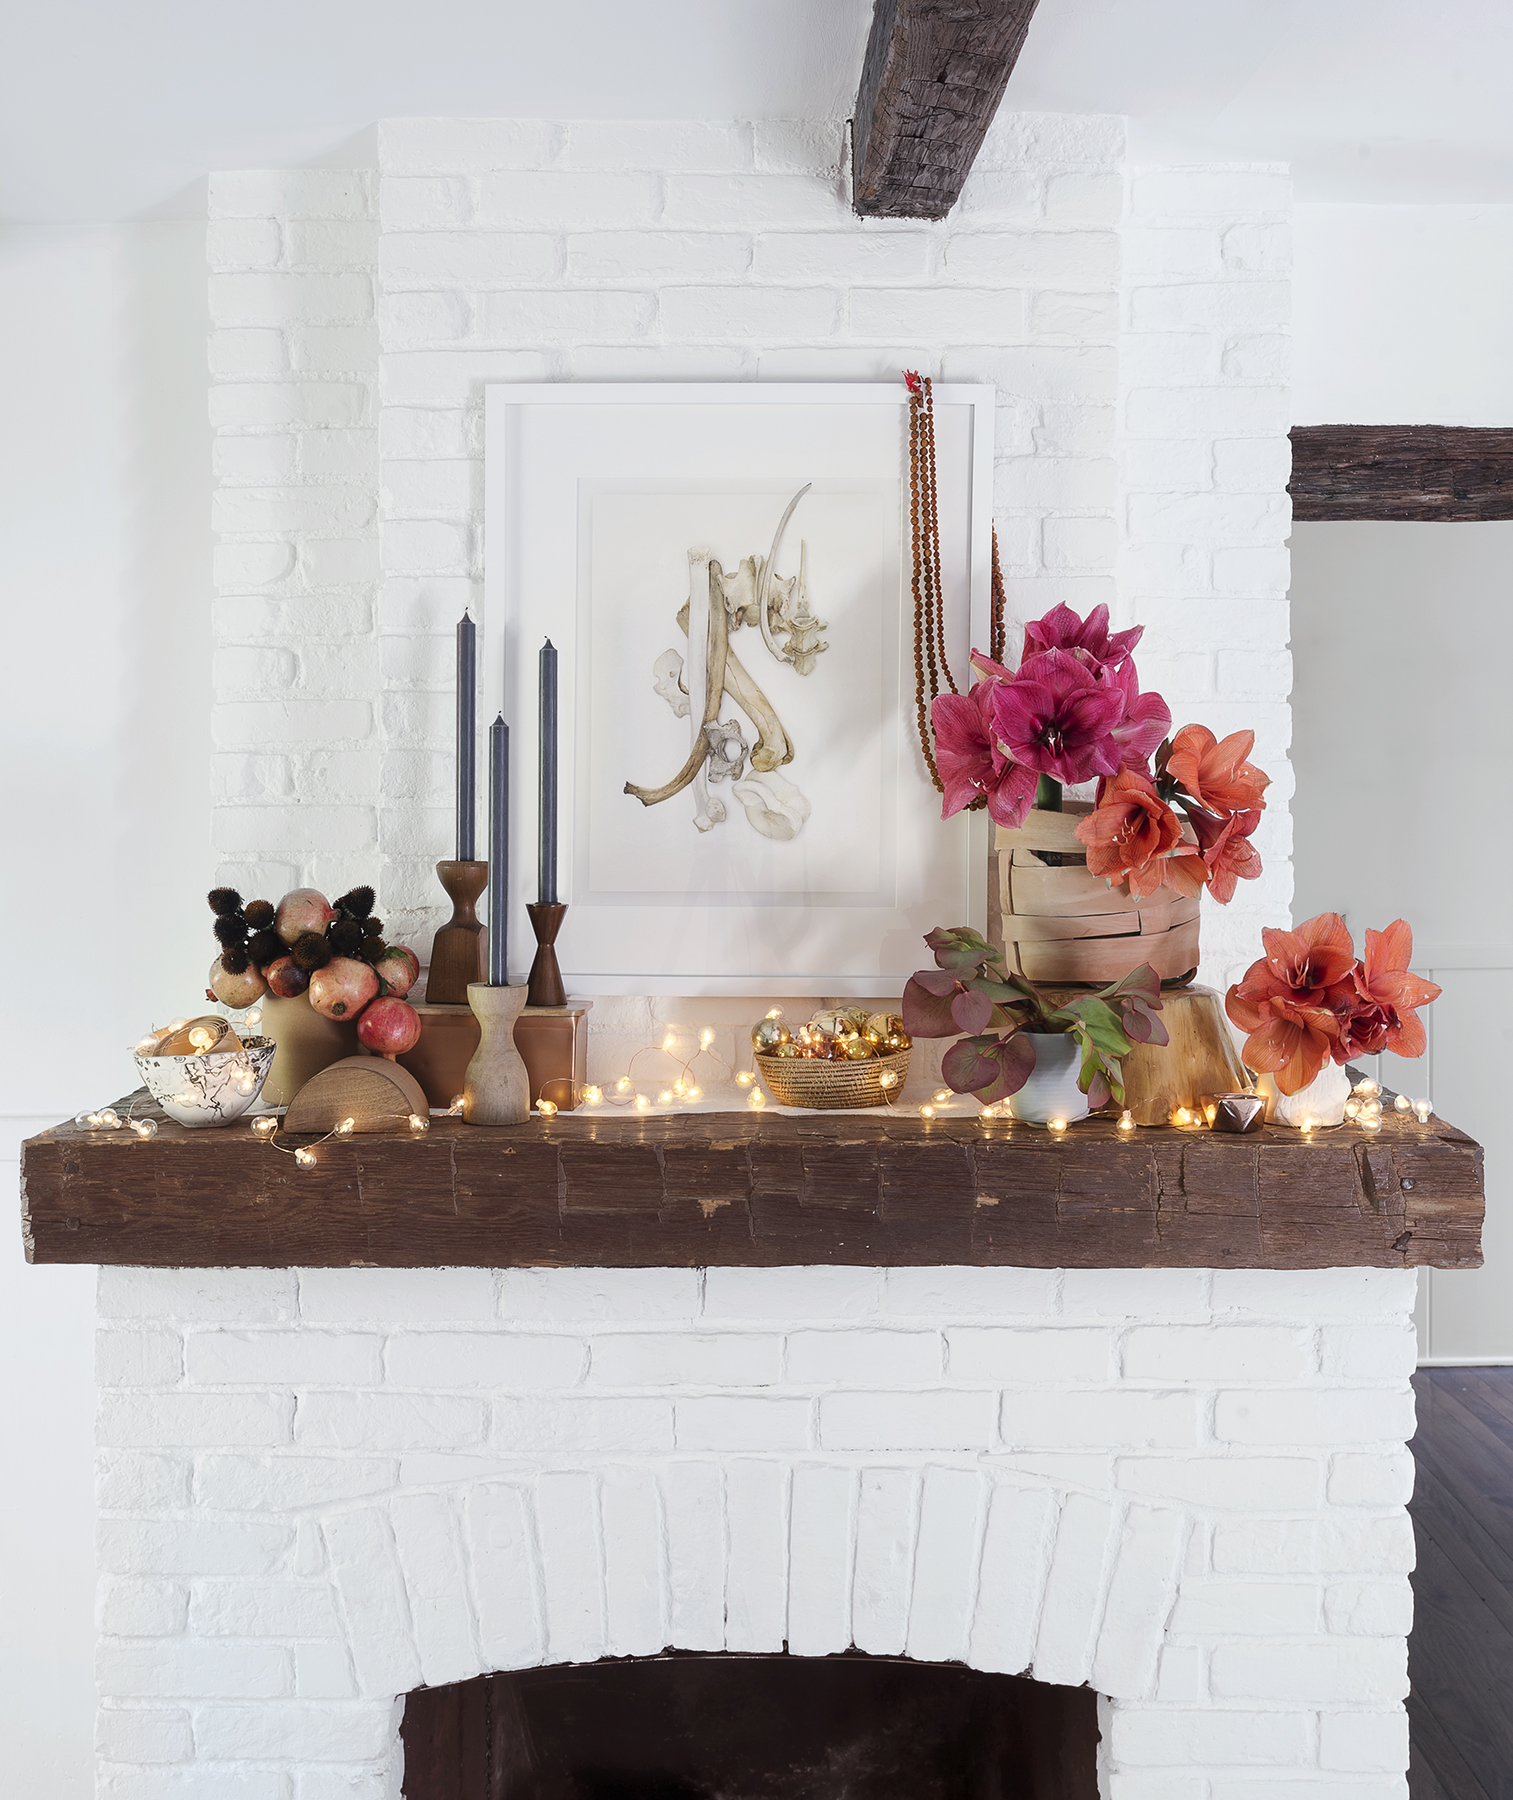 6 Ways To Make Your House More Luxe For The Holidays